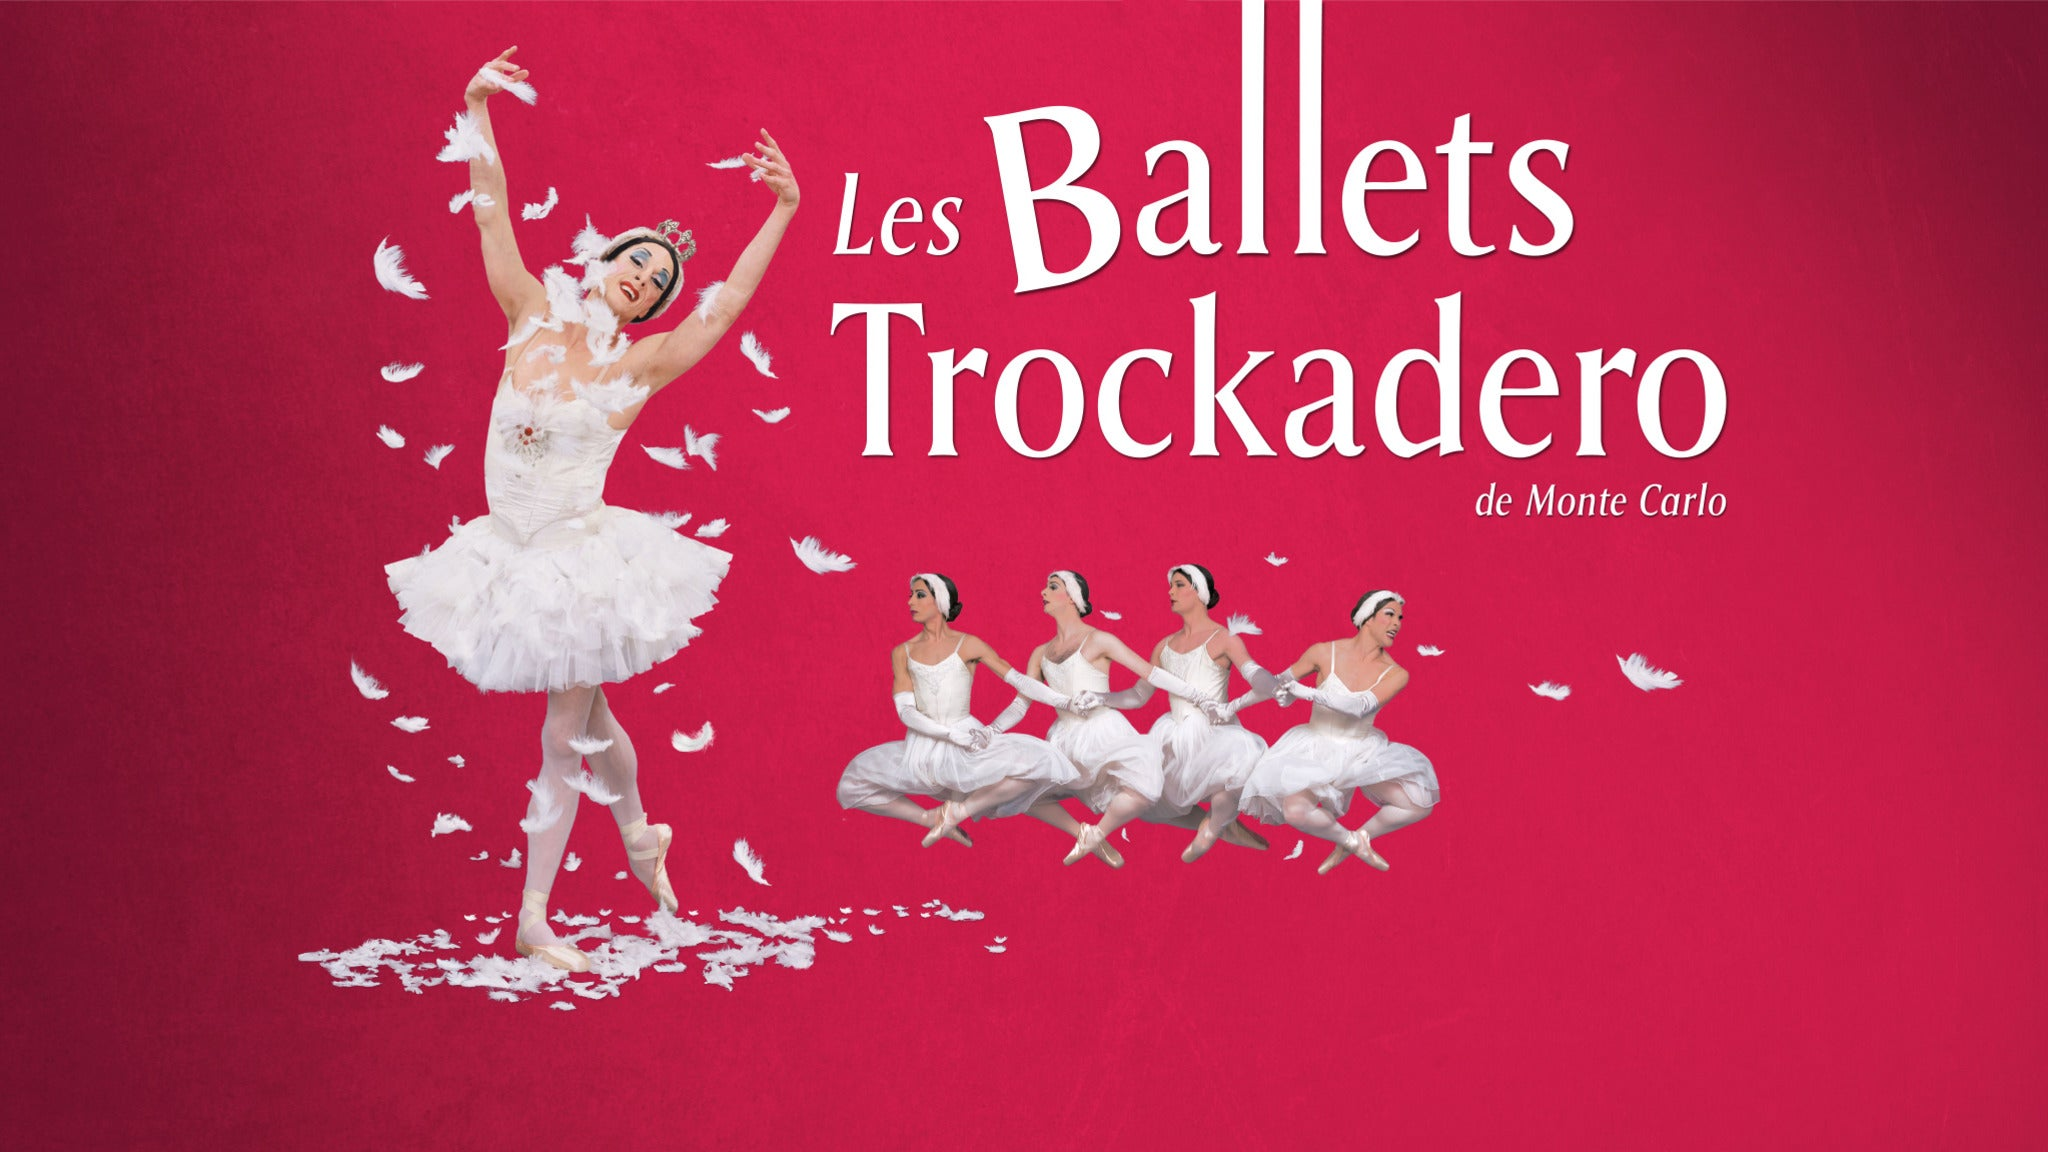 Les Ballets Trockadero De Monte Carlo at McCallum Theatre